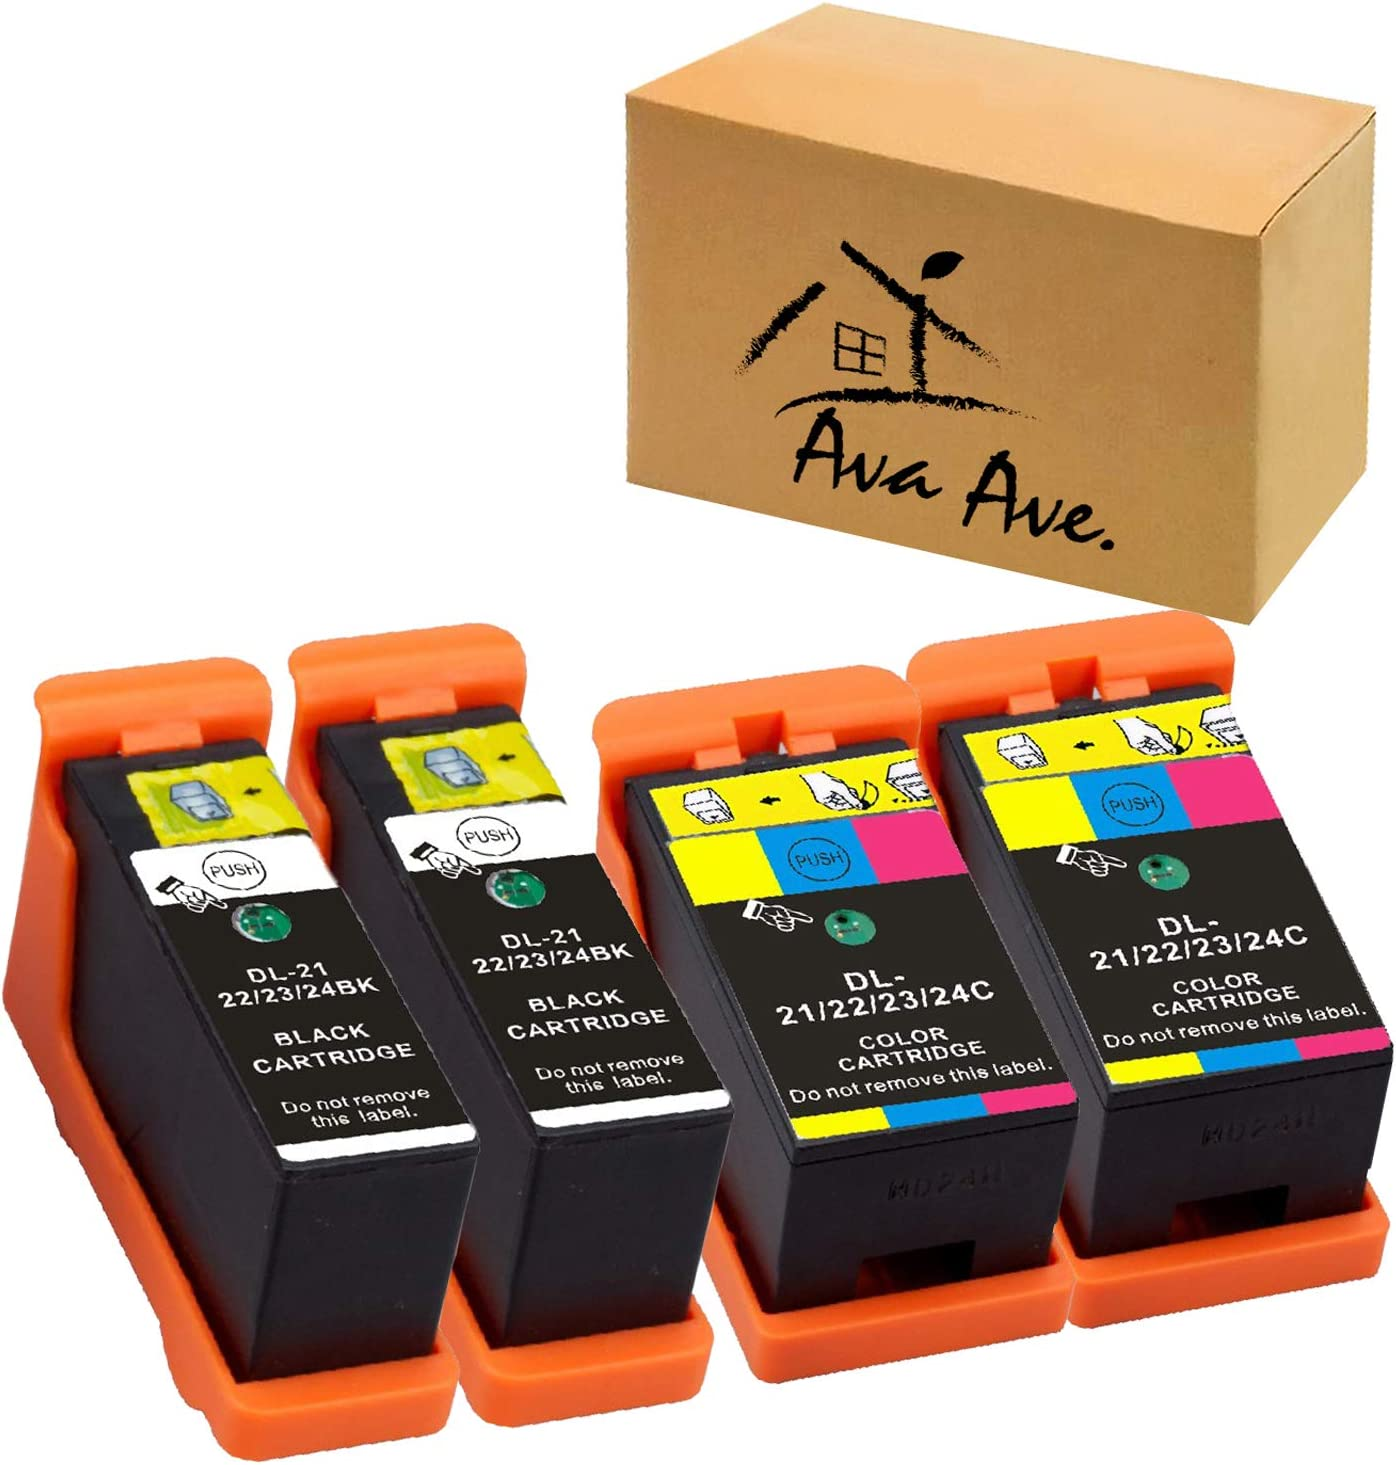 Replace for Dell Series 21 Ink Cartridges Compatible for Dell V515w, V715w, P513w, P713w, V313, V313w, P713w, All-In-One printers (2 Black and 2 Color, 4 Pack) for Dell Series 21, Series 22, Series 23